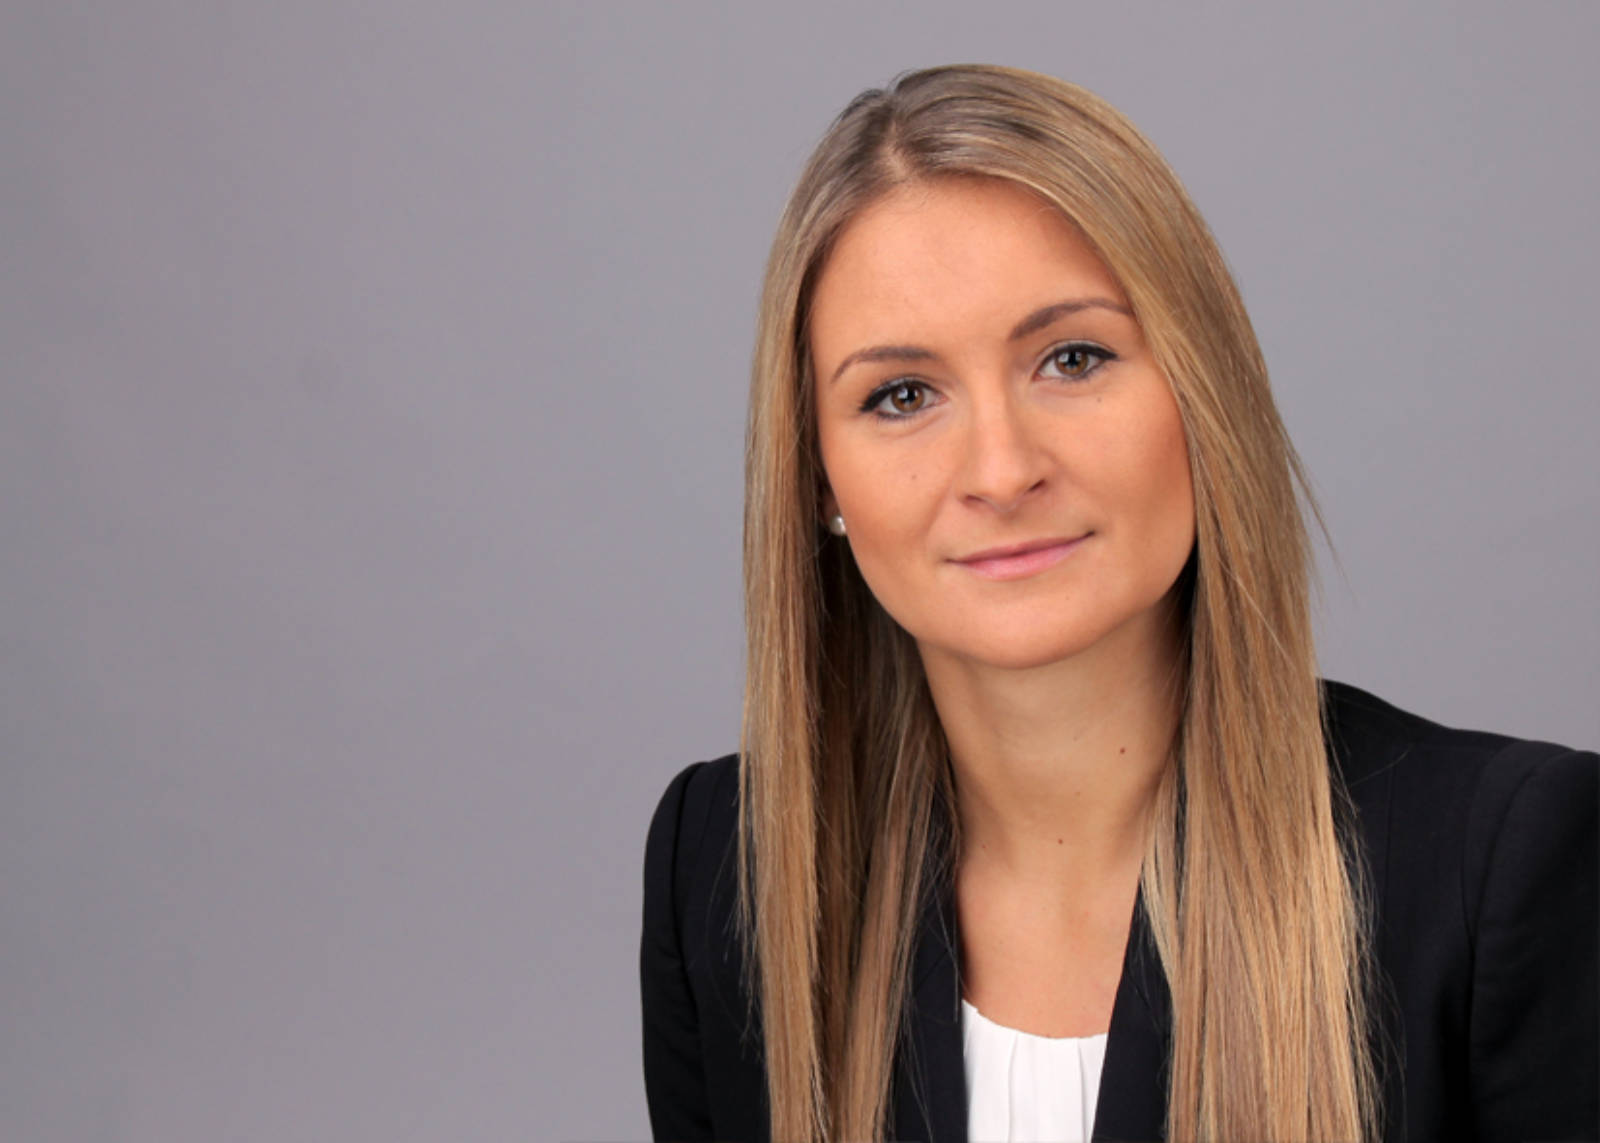 Bauknecht: Kathrin Schunger Head of Brand & Communication DACH